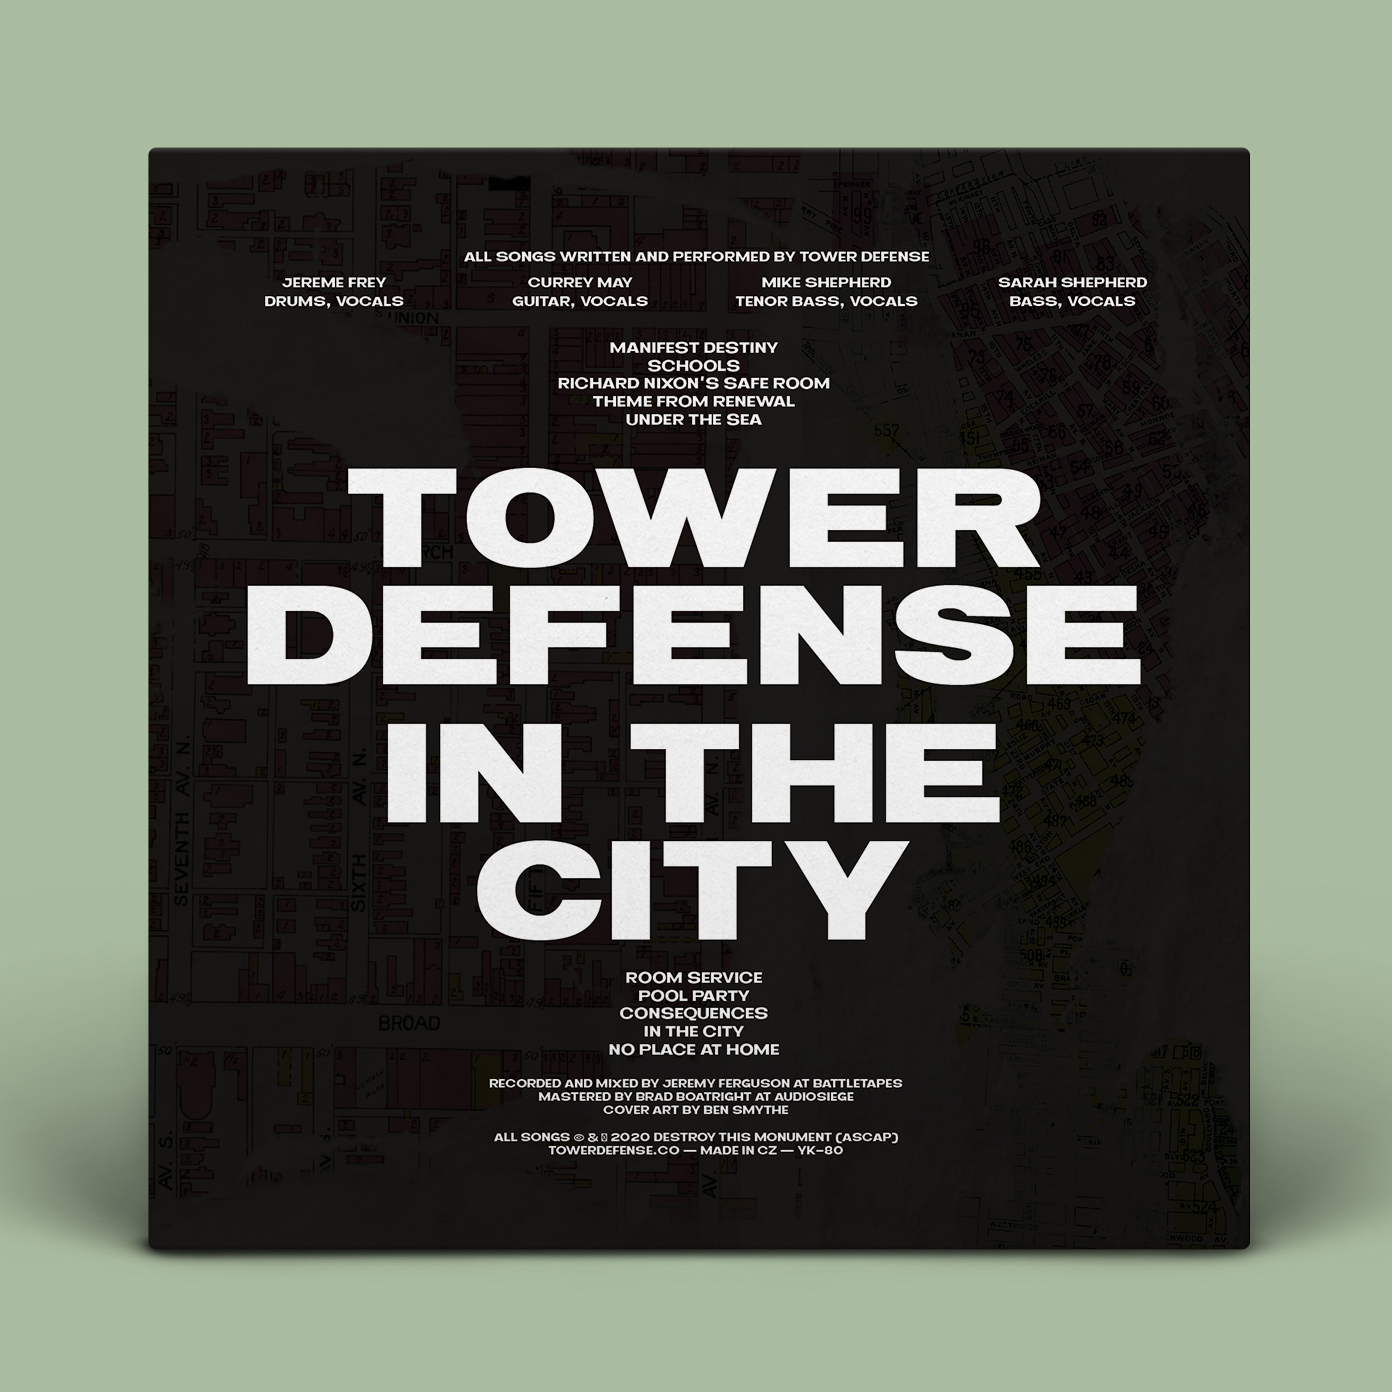 Tower Defense - In The City LP Back